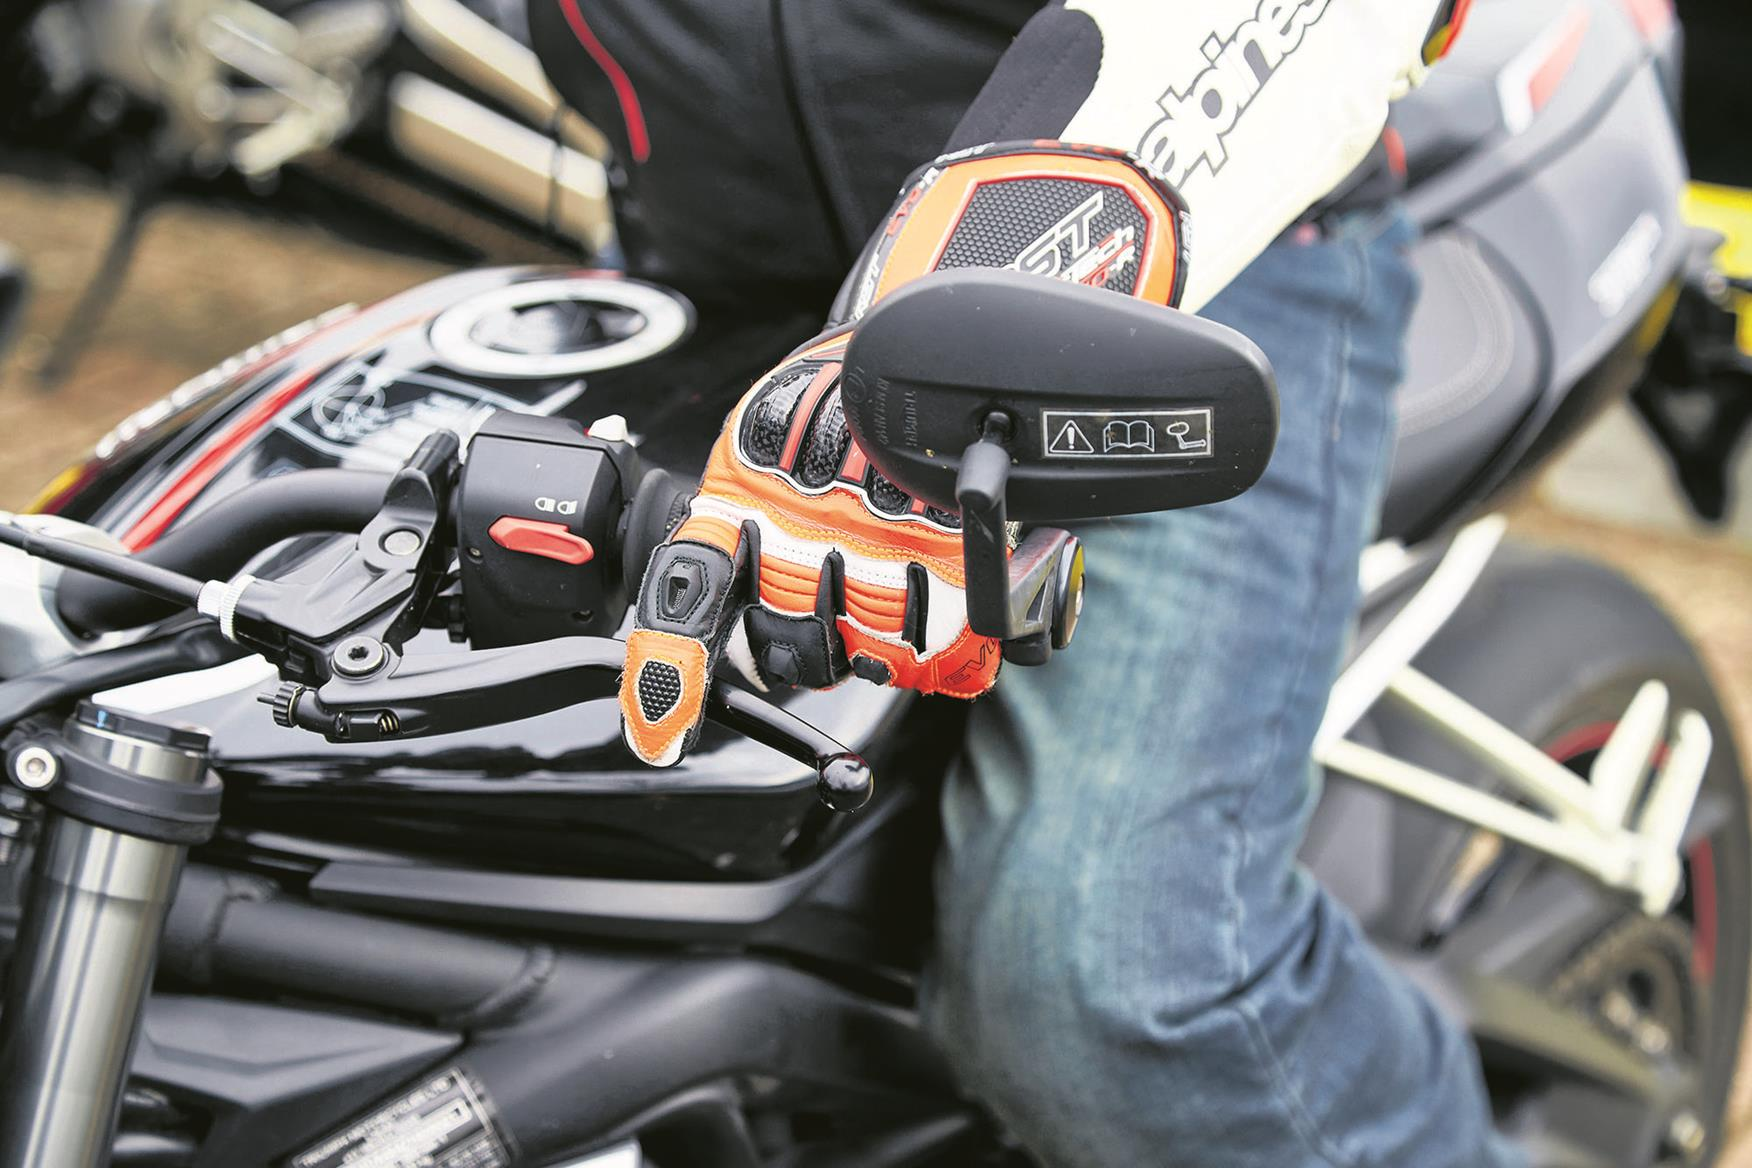 Smooth gear-changes are at the heart of every good ride